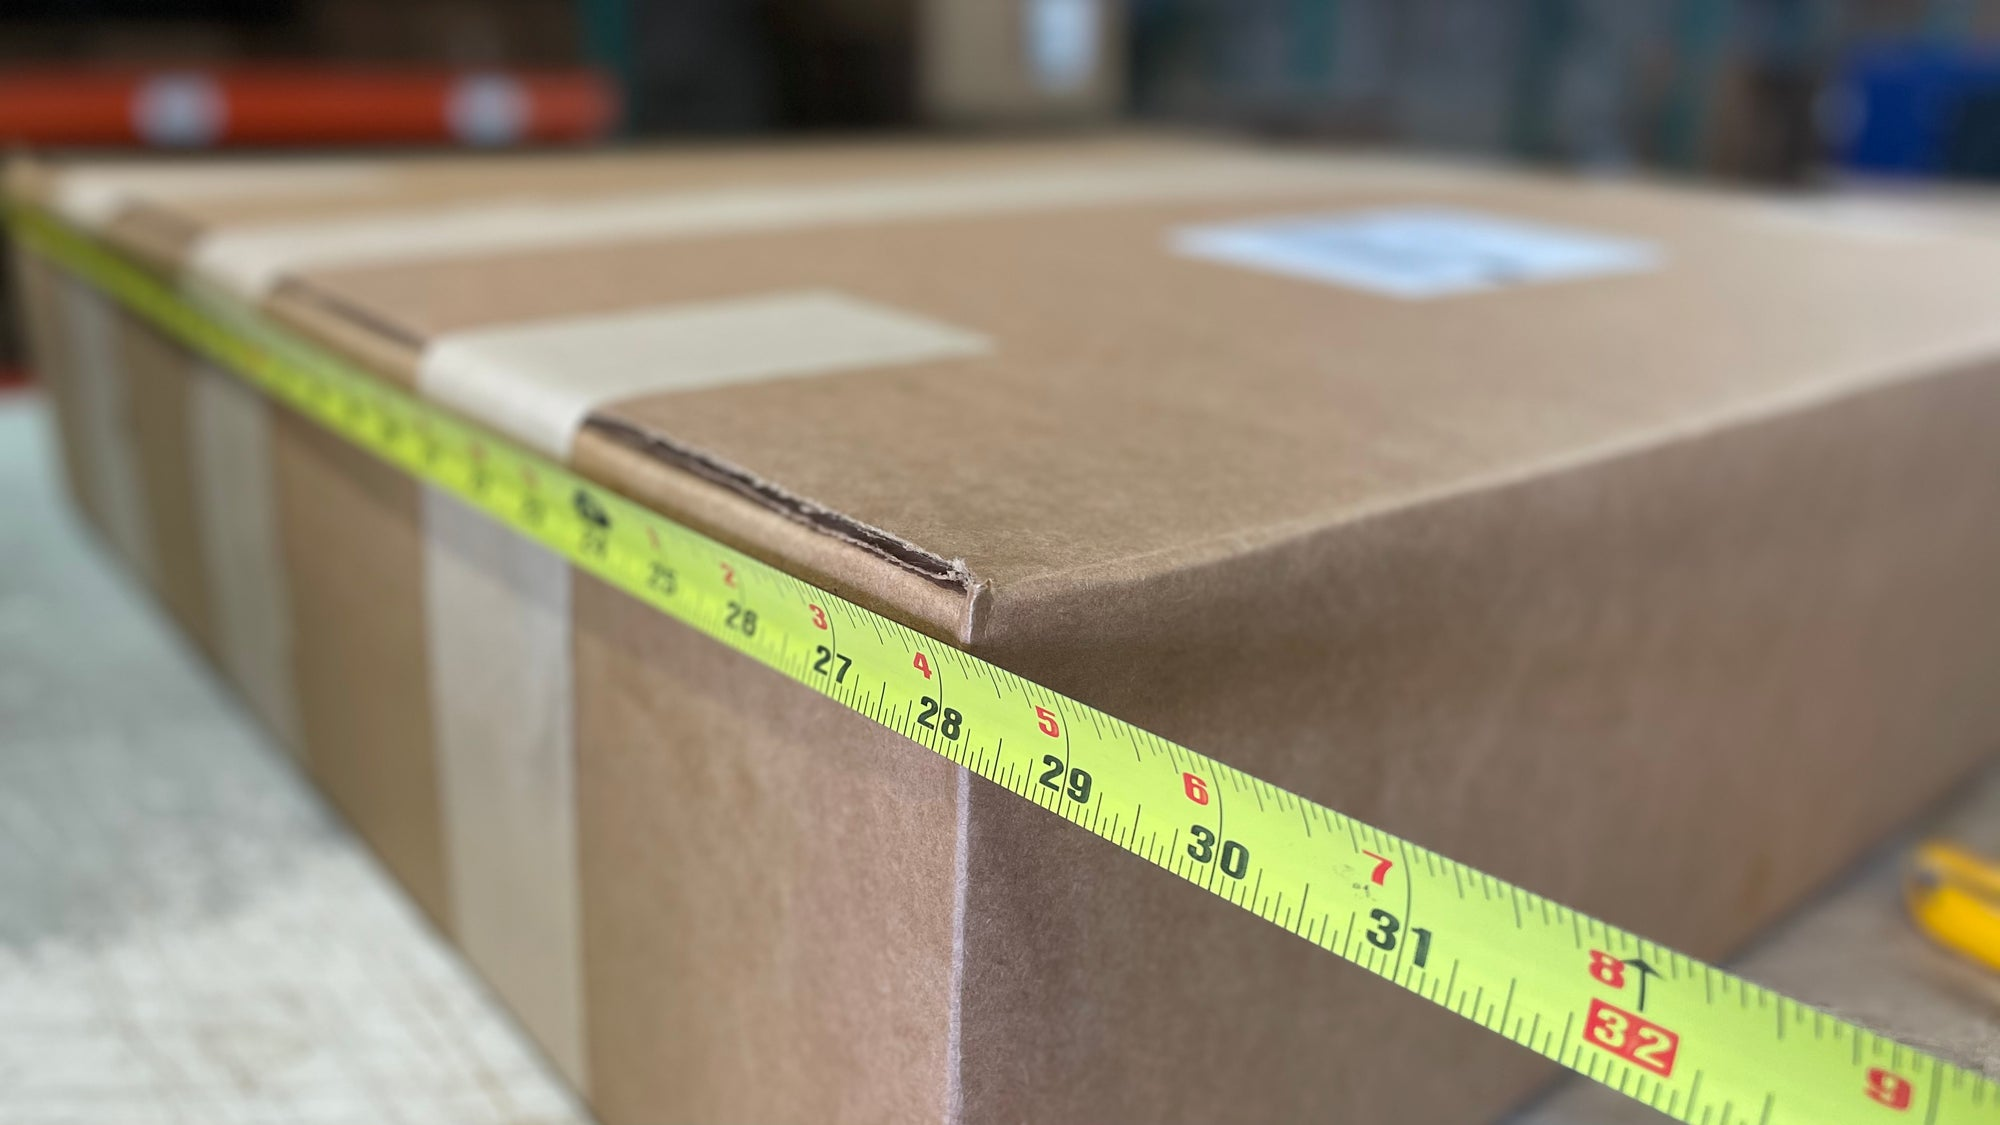 Length Width Height | How To Measure A Box For Shipping